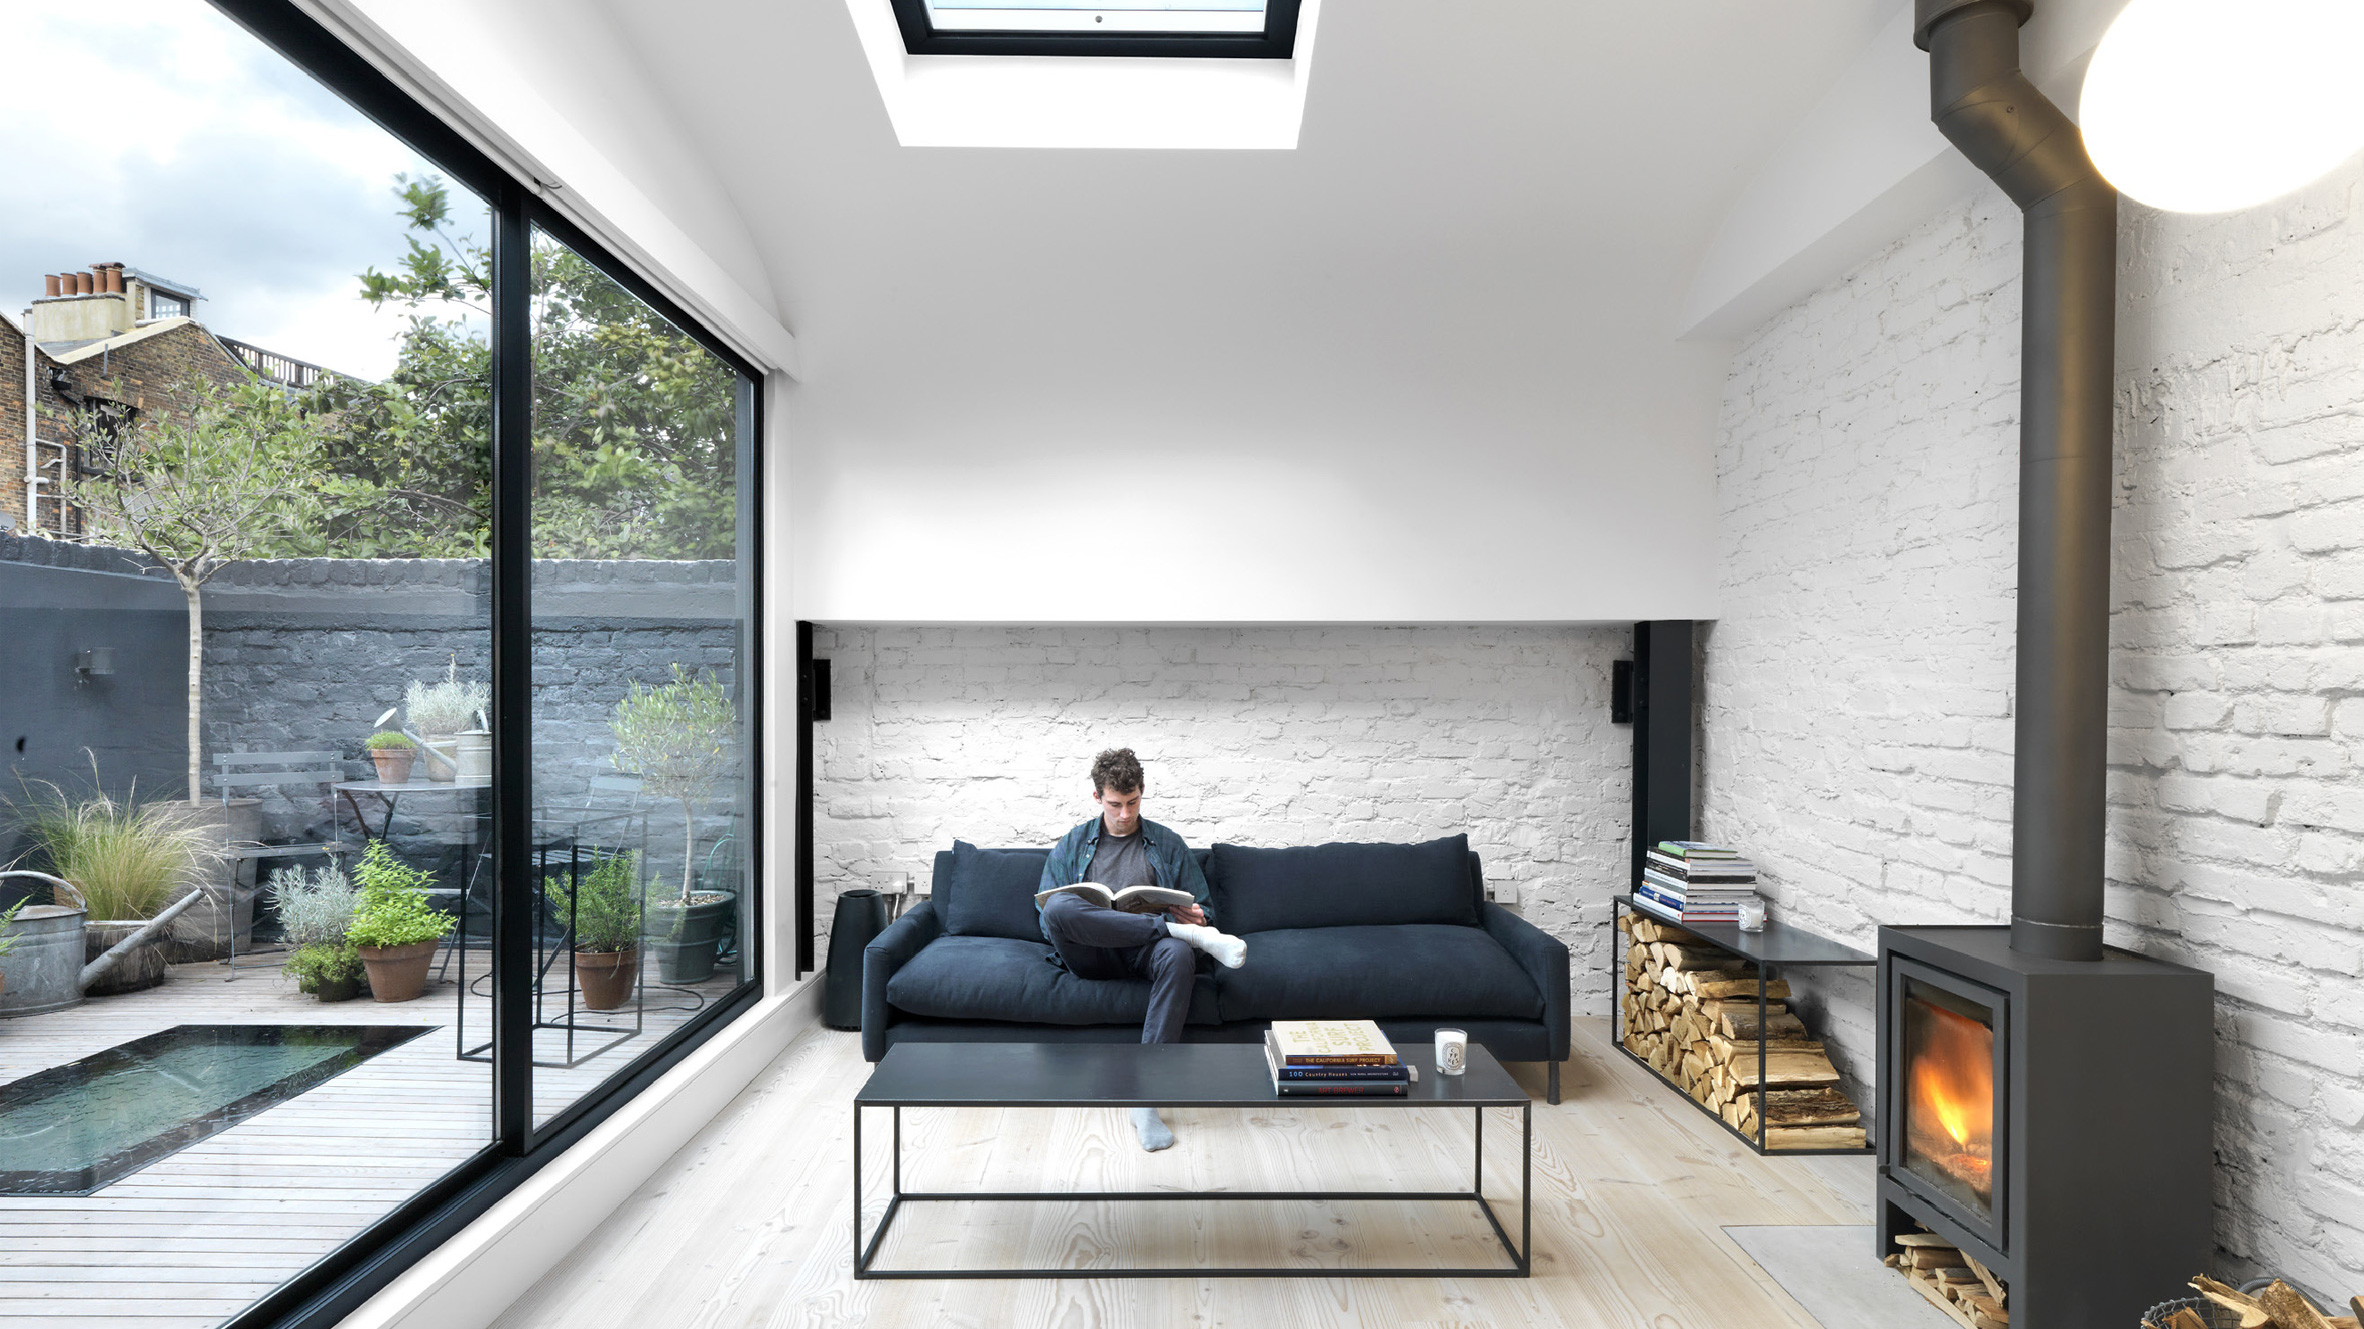 Threefold architects updates london mews house with for Home interior design london